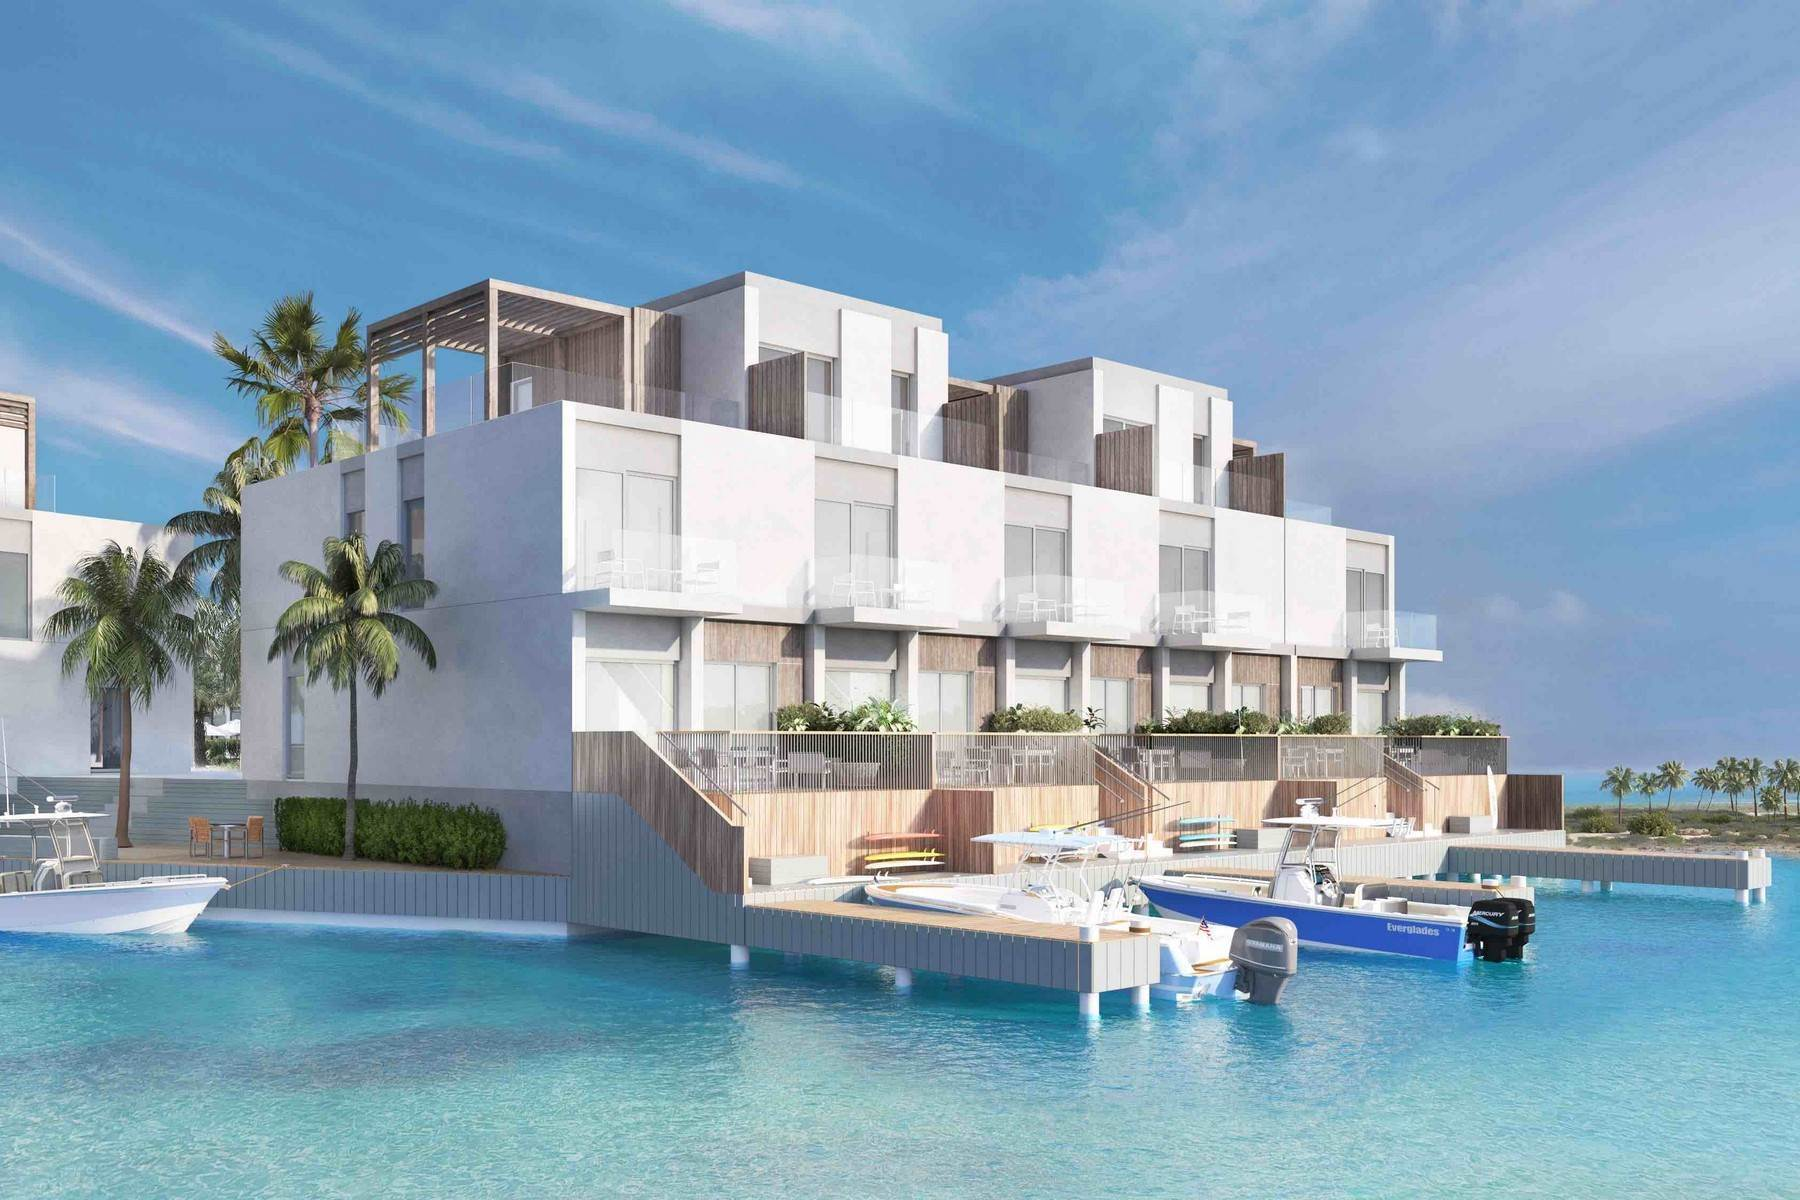 townhouses for Sale at SOUTH BANK - BOATHOUSES - THREE BEDROOM - A2 South Bank, Long Bay, Providenciales Turks And Caicos Islands